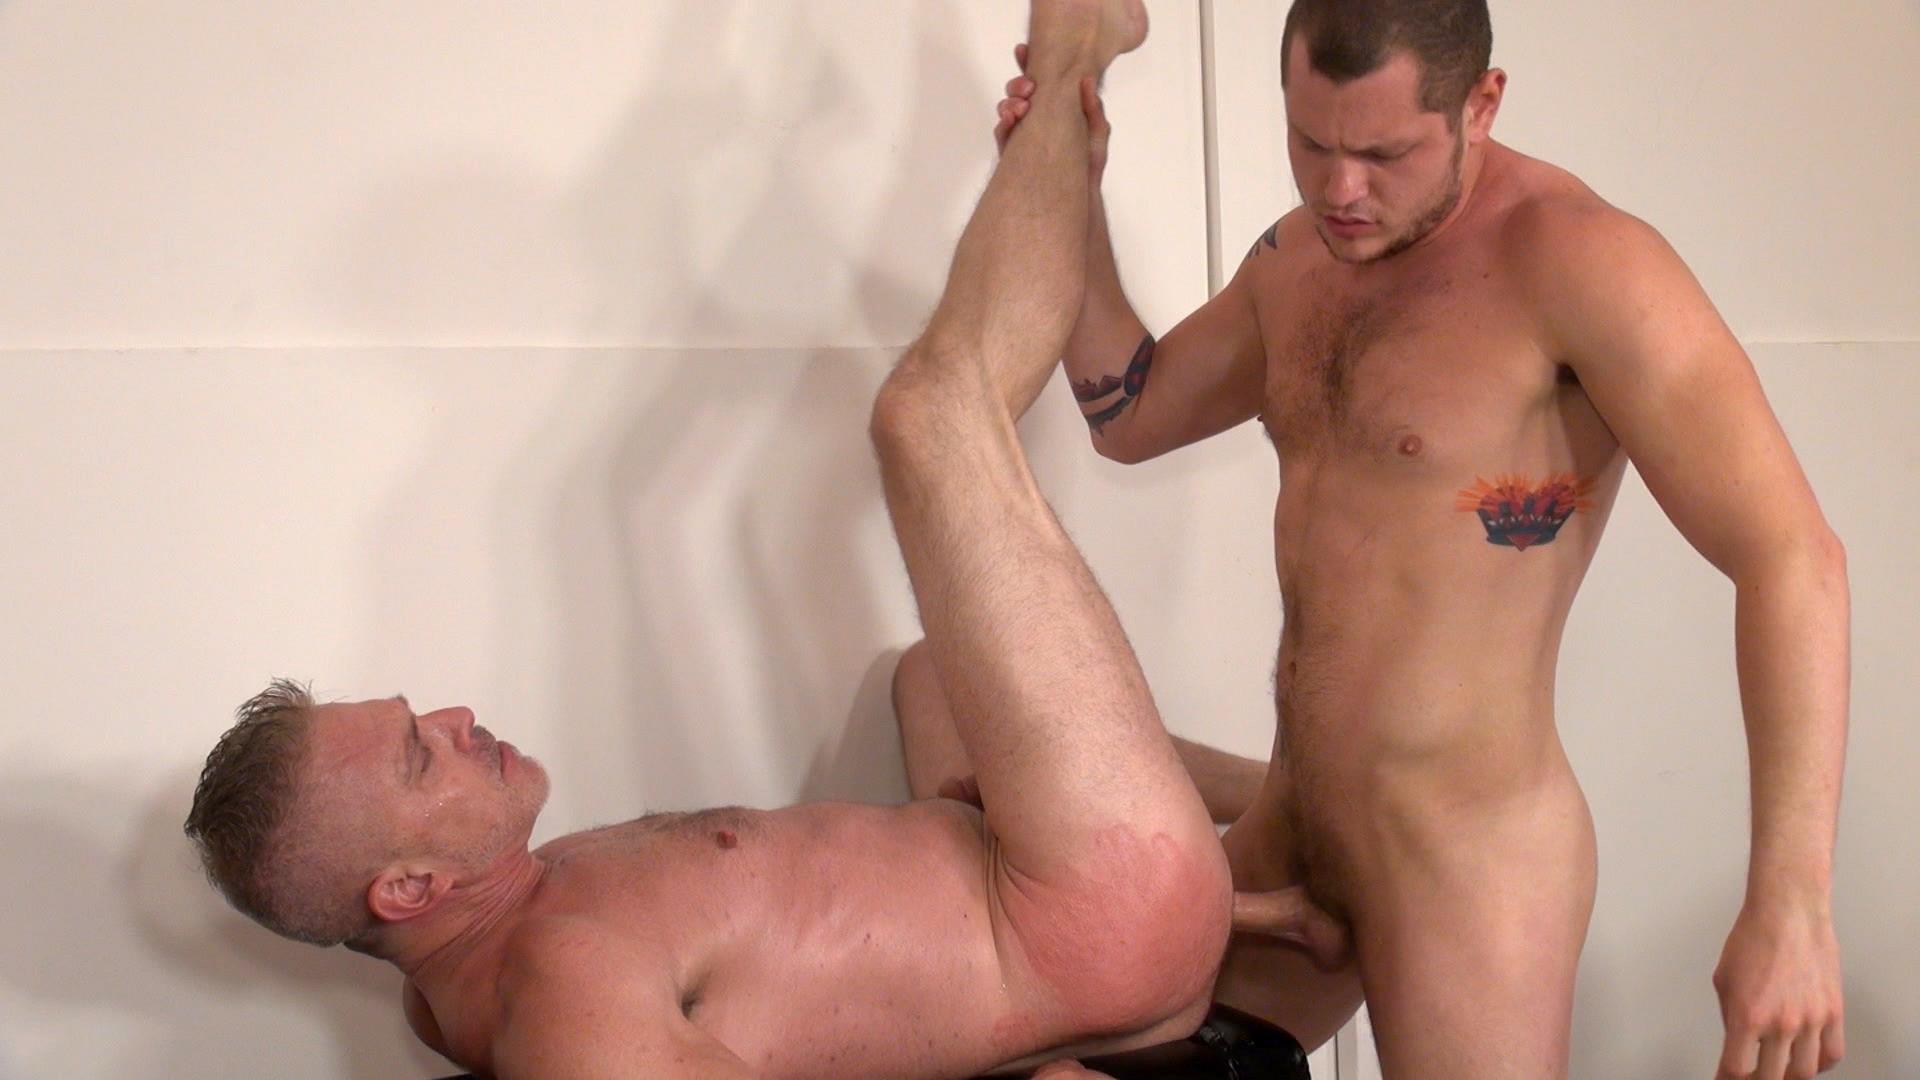 Raw-and-Rough-Sam-Dixon-and-Blue-Bailey-Daddy-And-Boy-Flip-Flip-Bareback-Fucking-Amateur-Gay-Porn-03 Blue Bailey Flip Flop Barebacking With A Hung Daddy